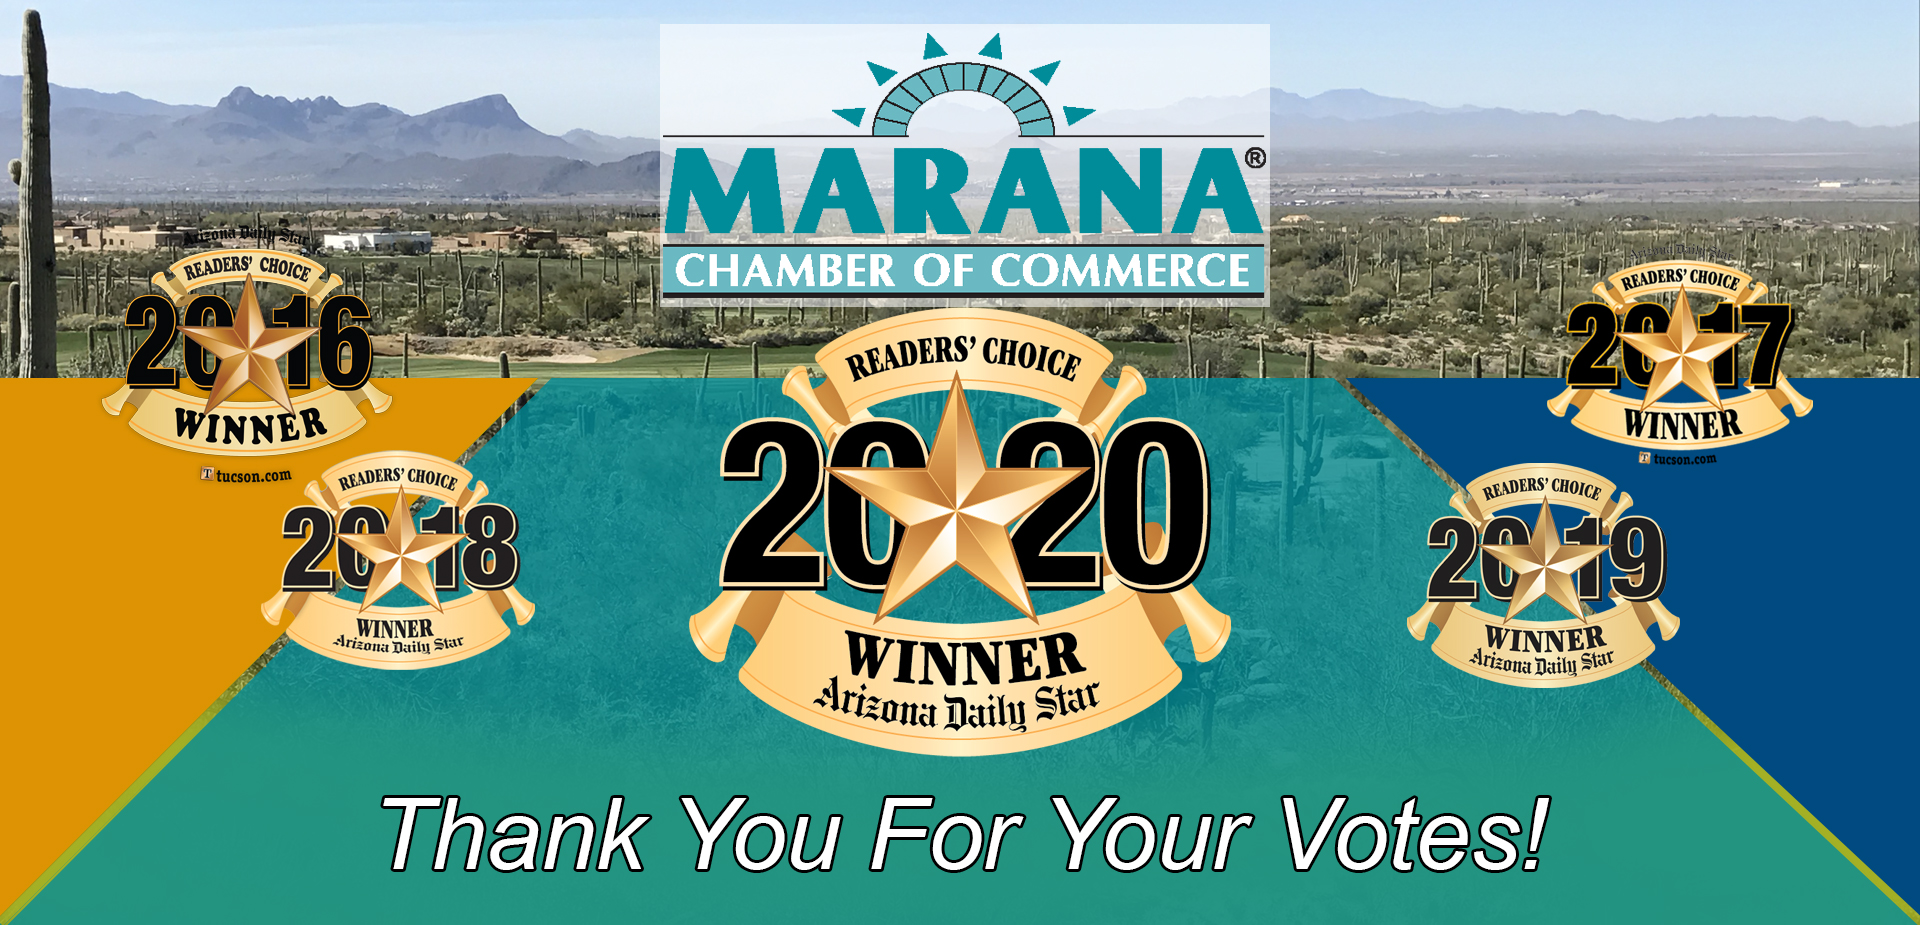 Marana Chamber of Commerce Reader's Choice vote 2020